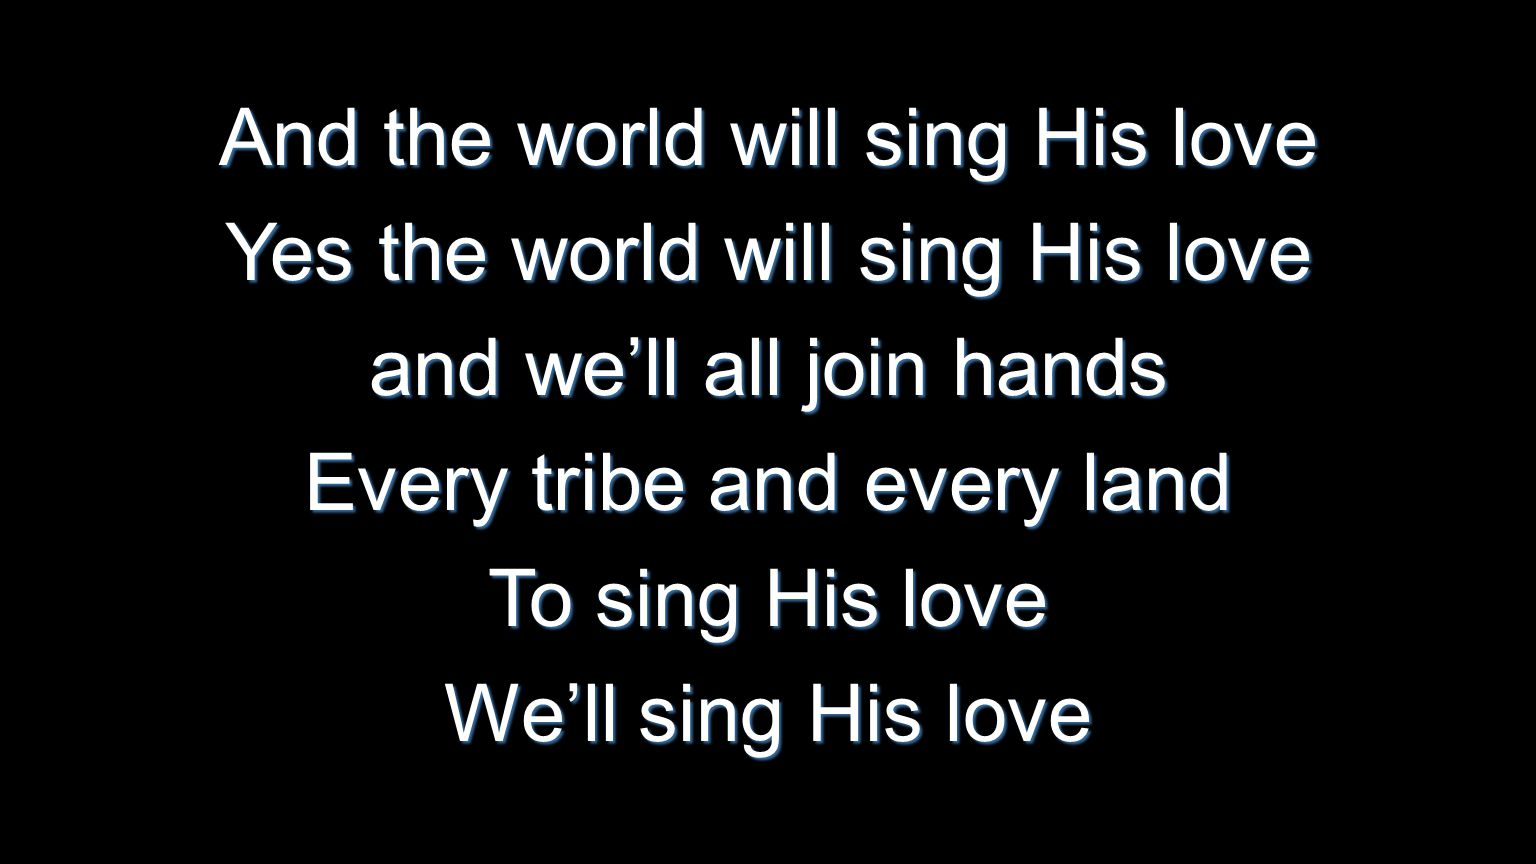 And the world will sing His love Yes the world will sing His love